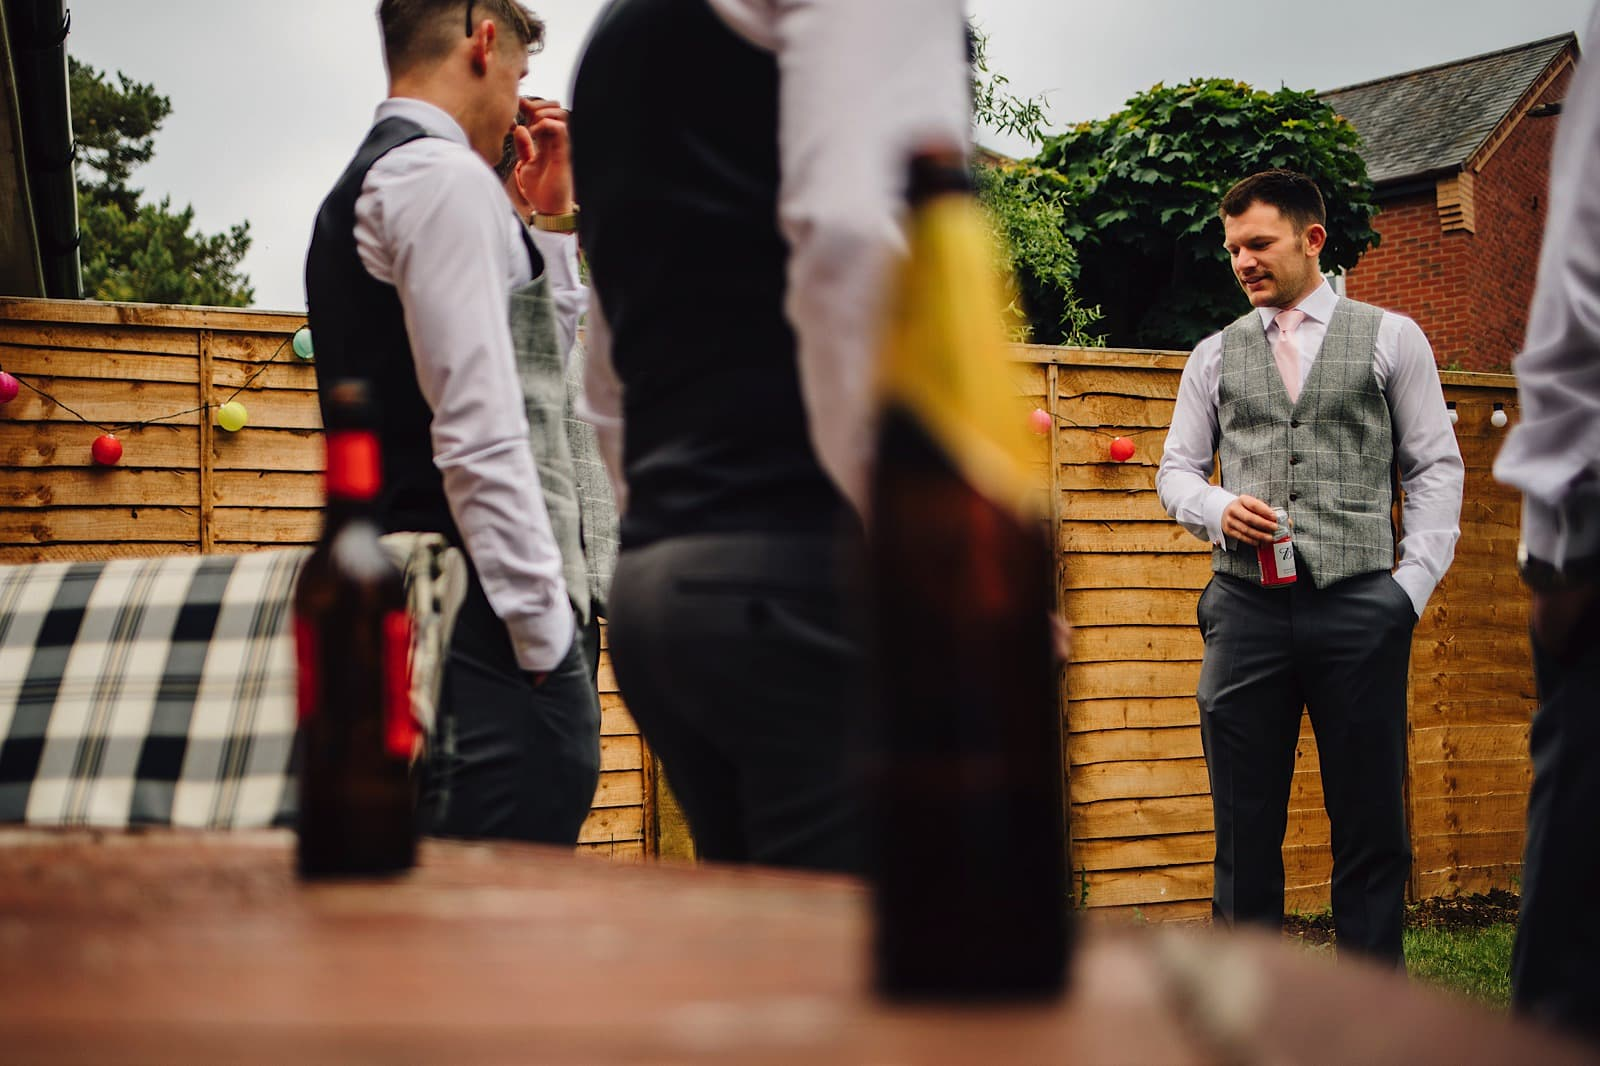 Dovecote barn adderbury wedding photography 014